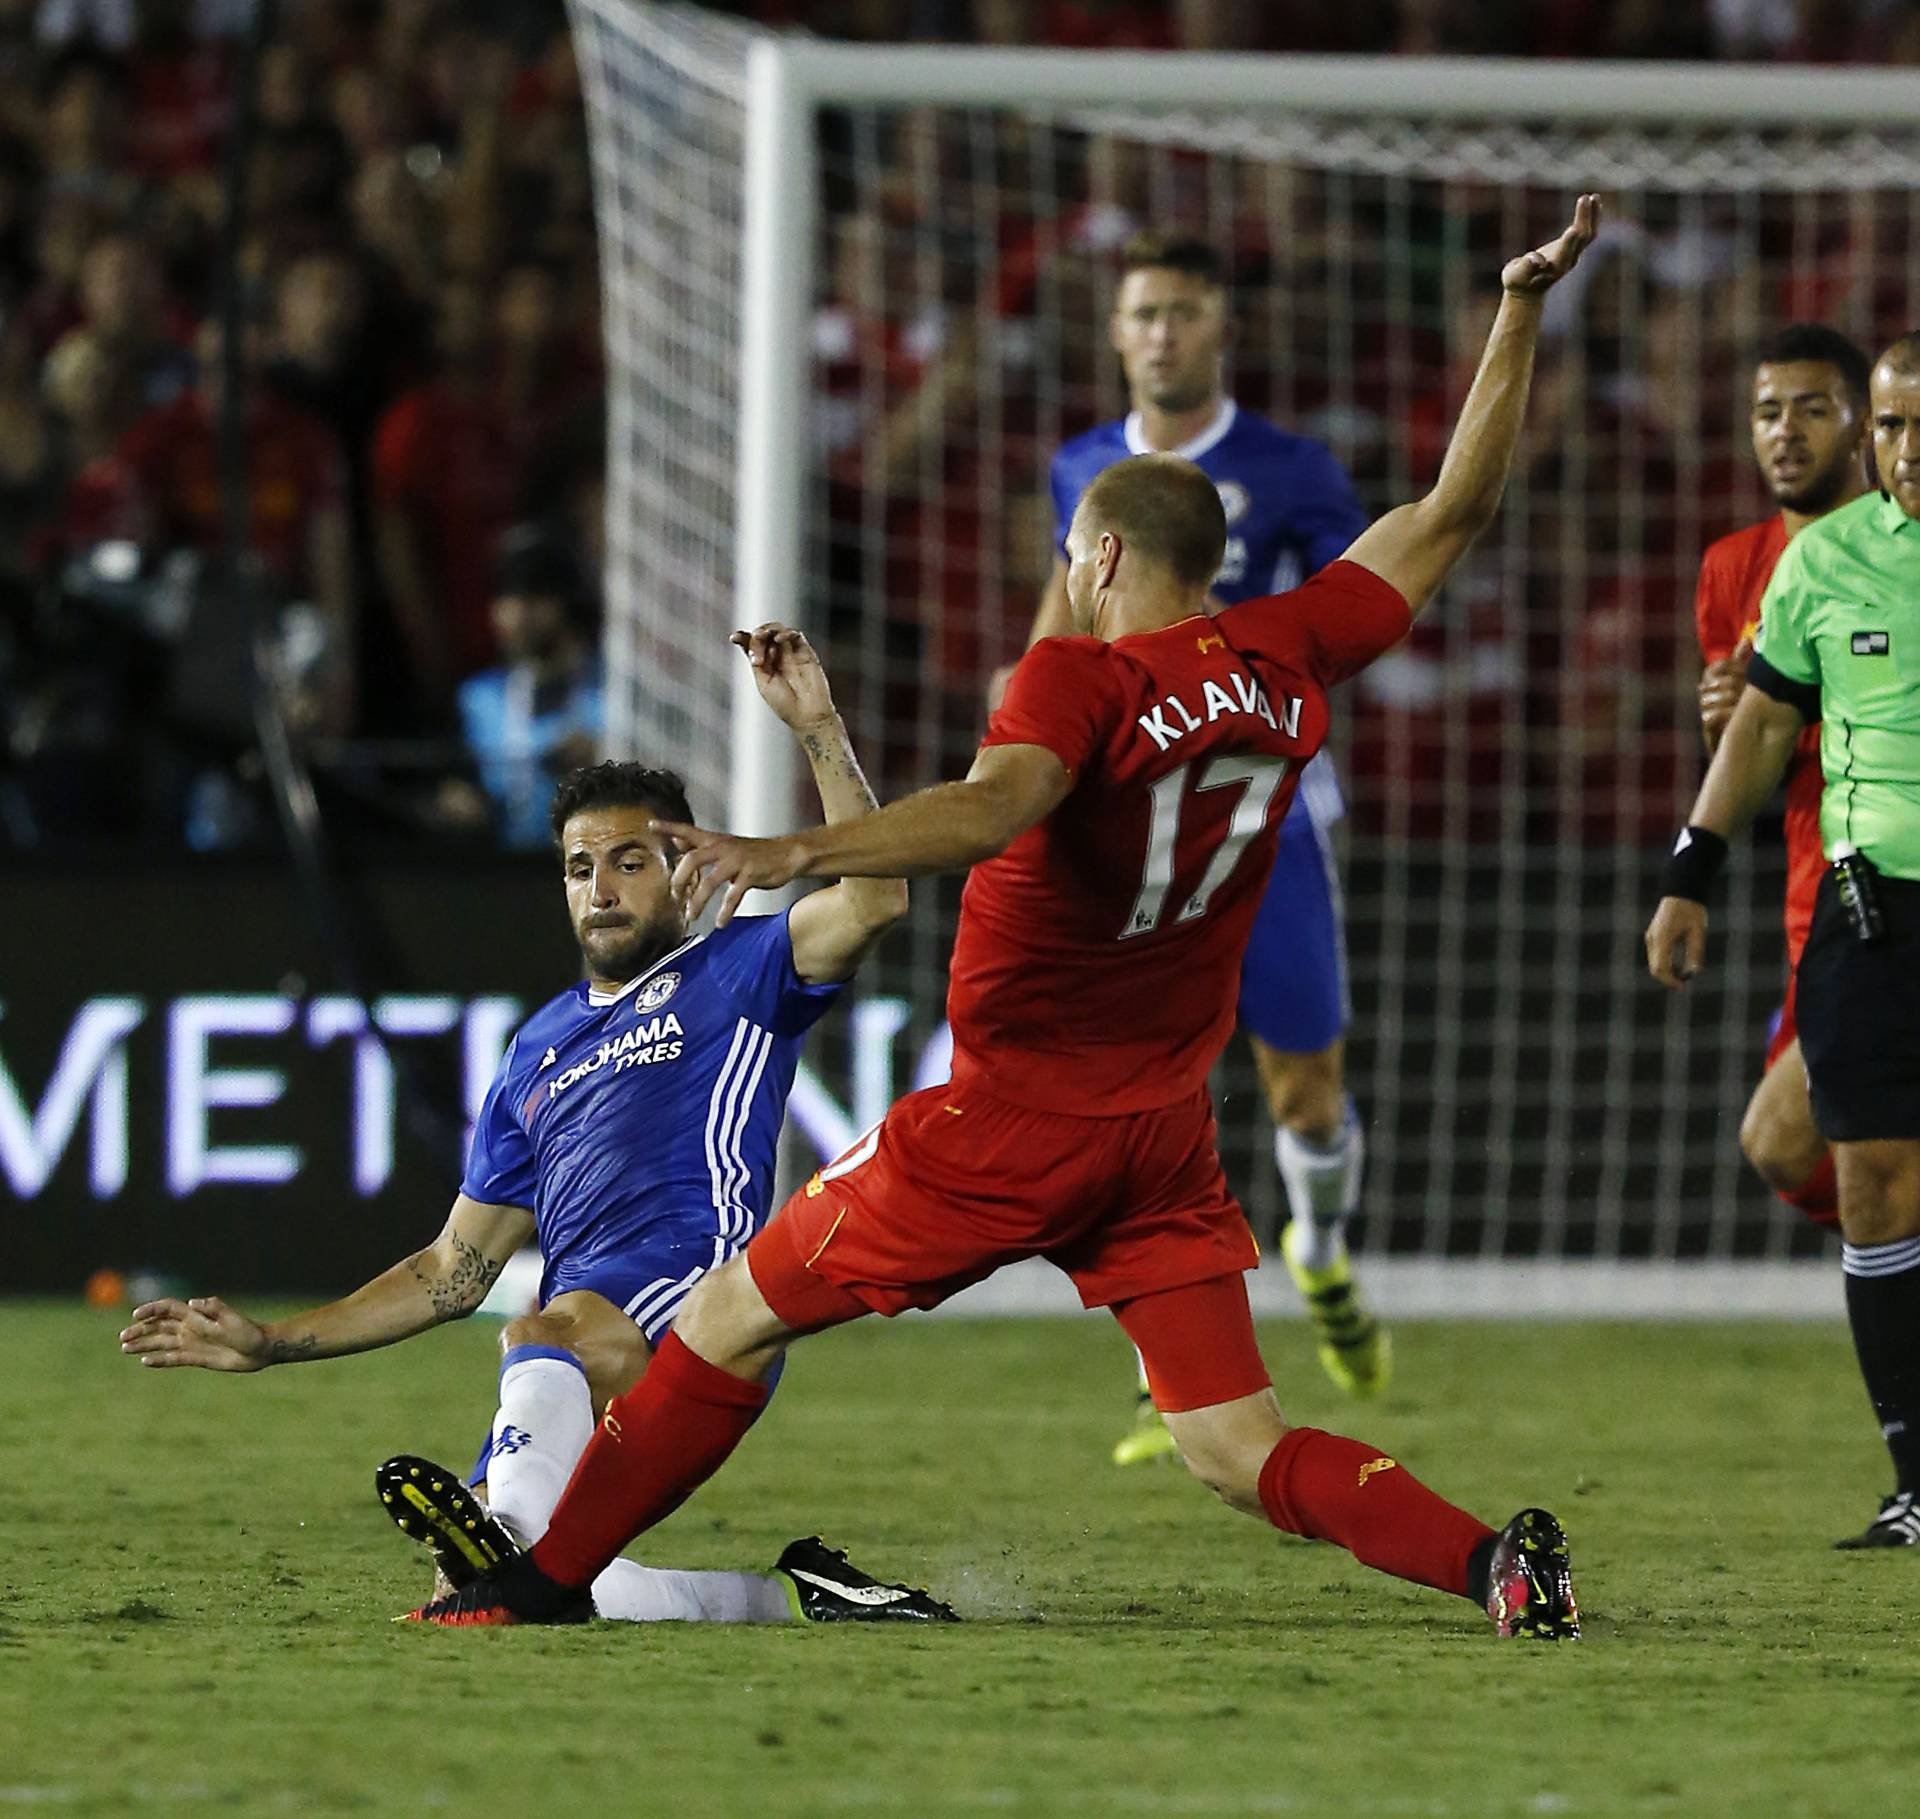 Liverpool v Chelsea - International Champions Cup